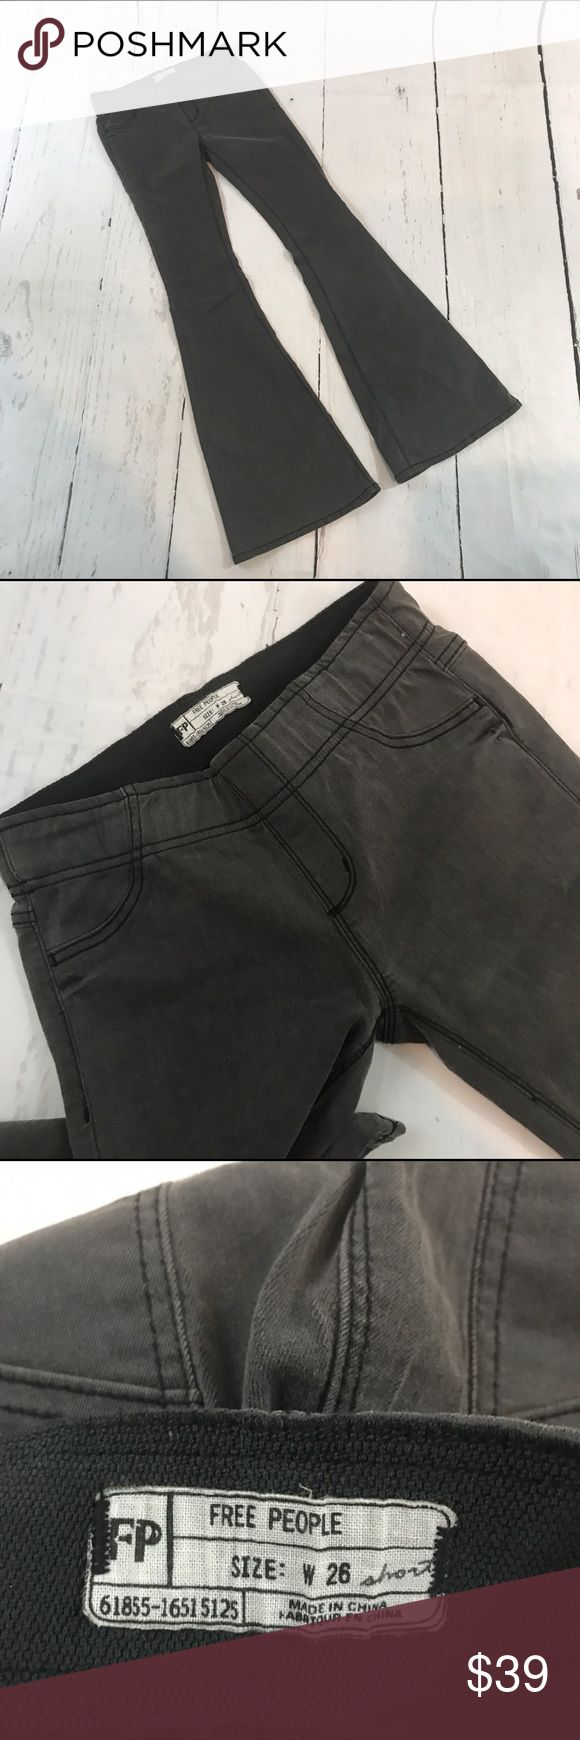 """💙💙 FREE PEOPLE PULL ON FLARE JEANS BLACK B19 Condition: Excellent pre owned condition Approximate measurements (laying flat): Size 26 Short. 13.5"""" waist 39"""" length 32"""" inseam  Item location: bin 19 Free People Jeans Flare & Wide Leg"""